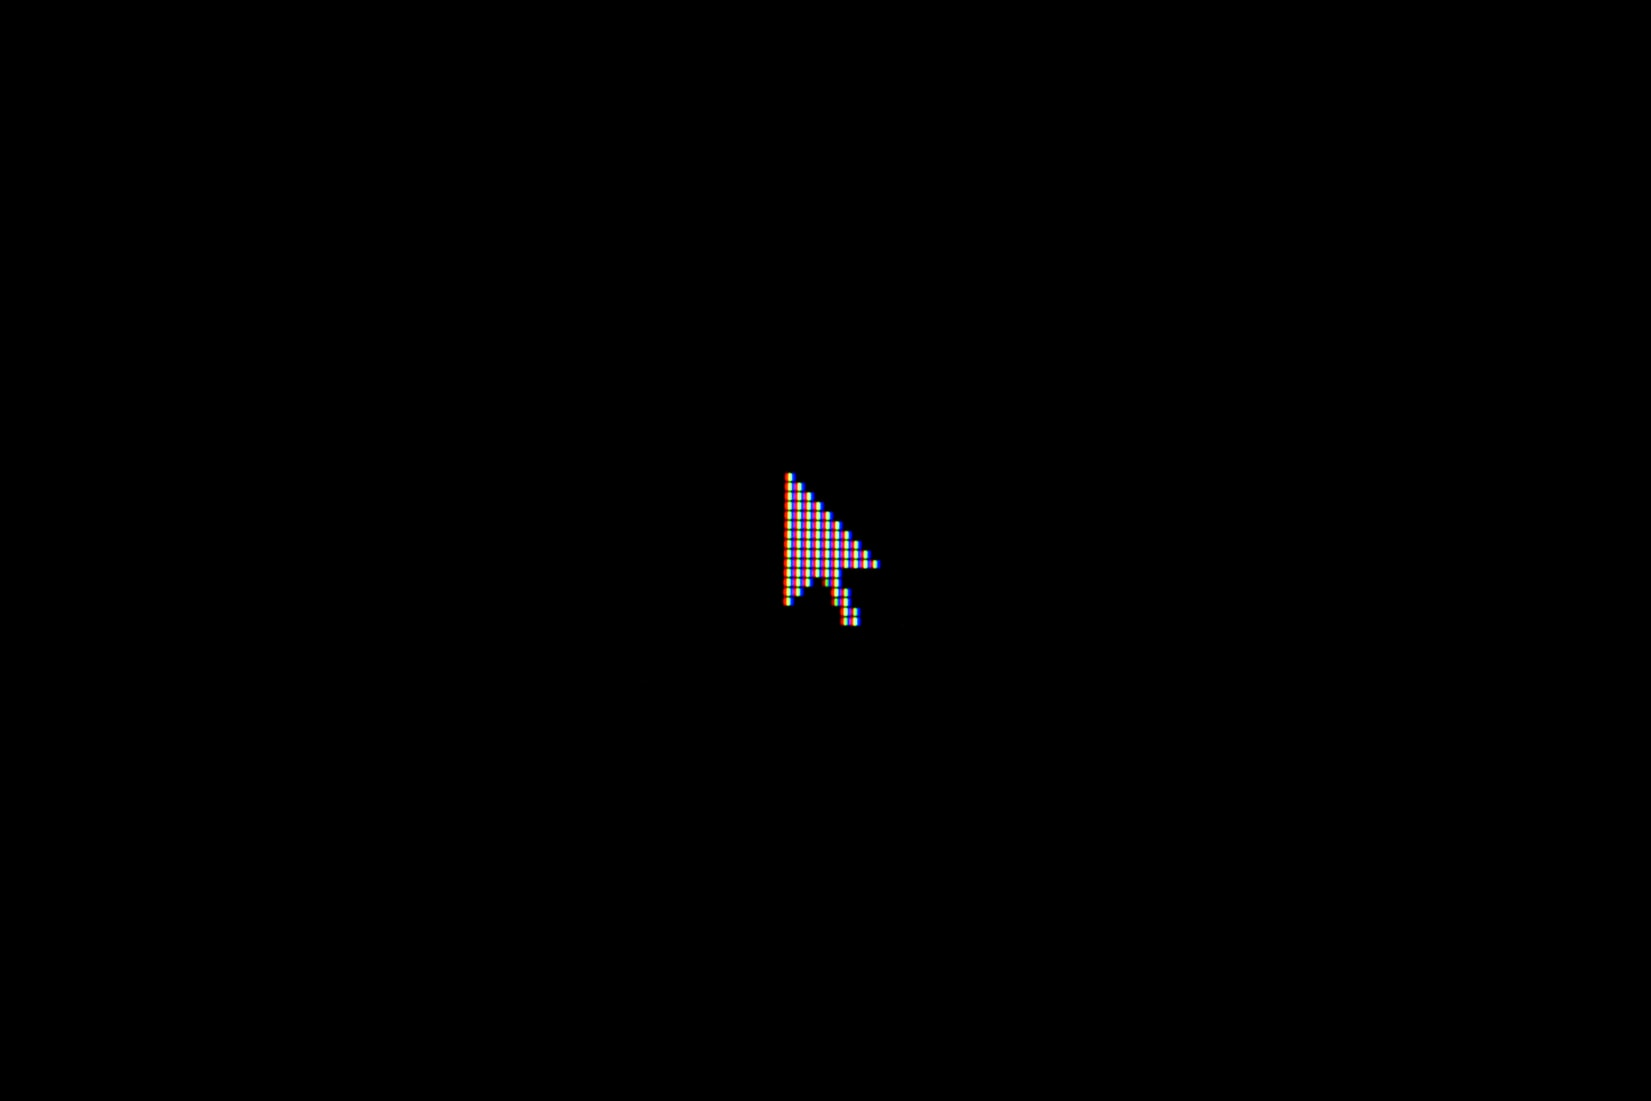 cursor arrow Sordoff